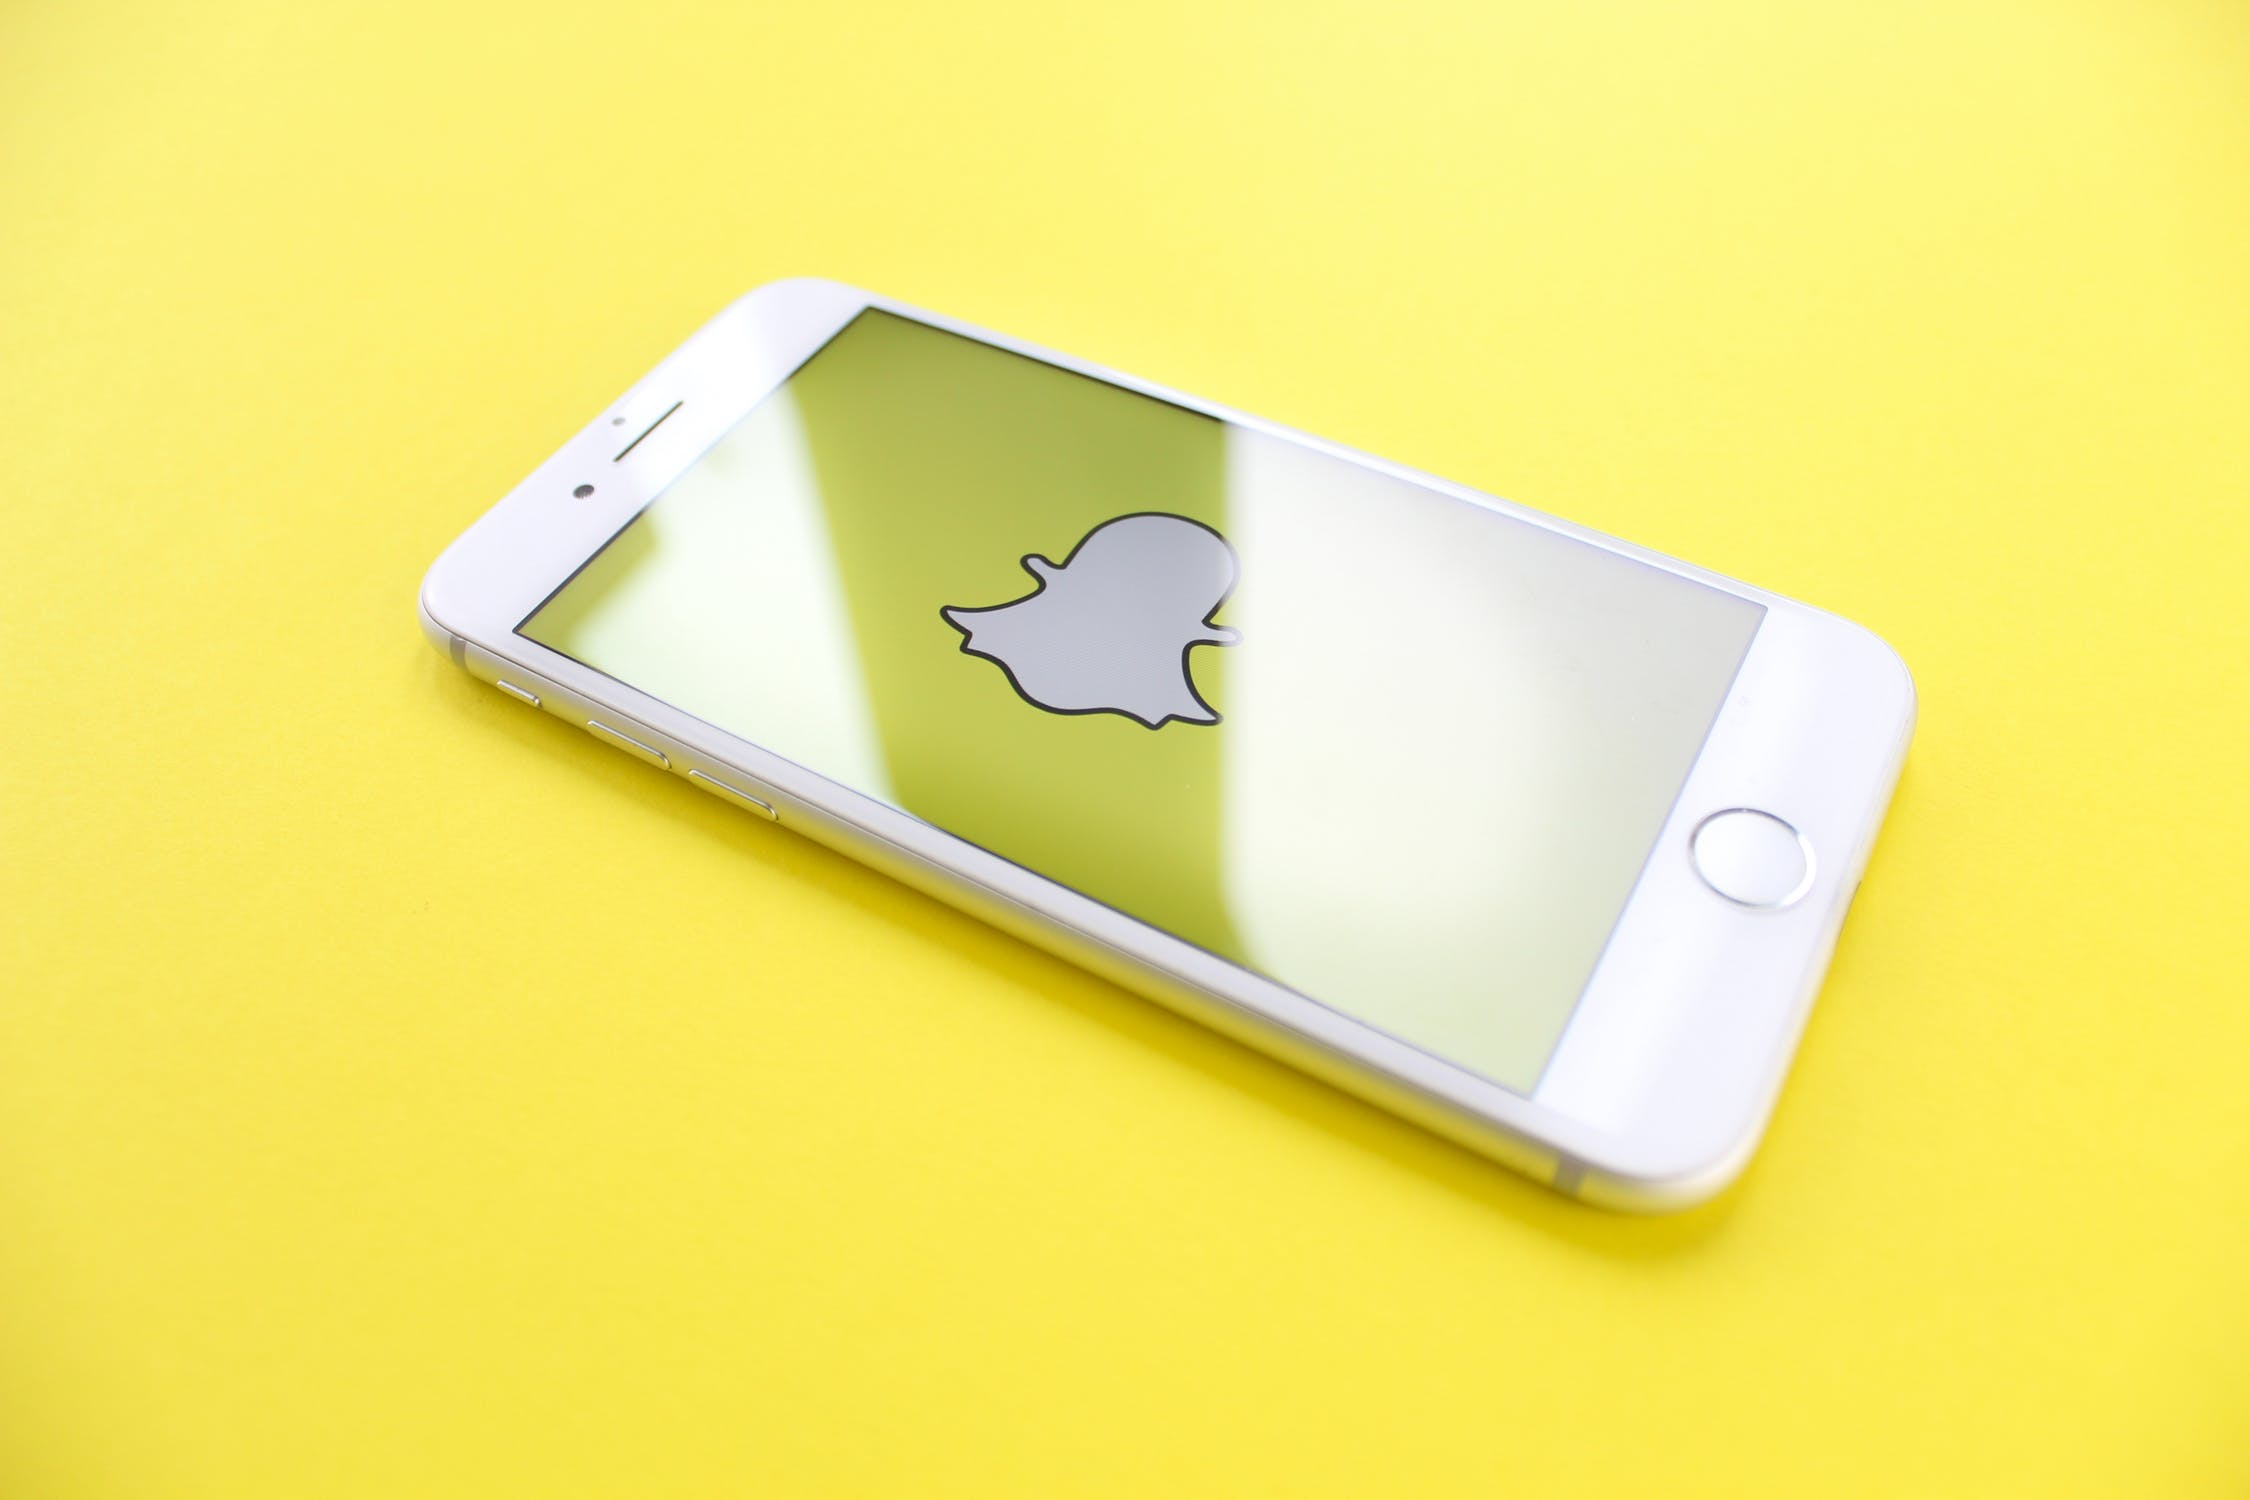 White smartphone with Snapchat logo on yellow background pros and cons of Instagram